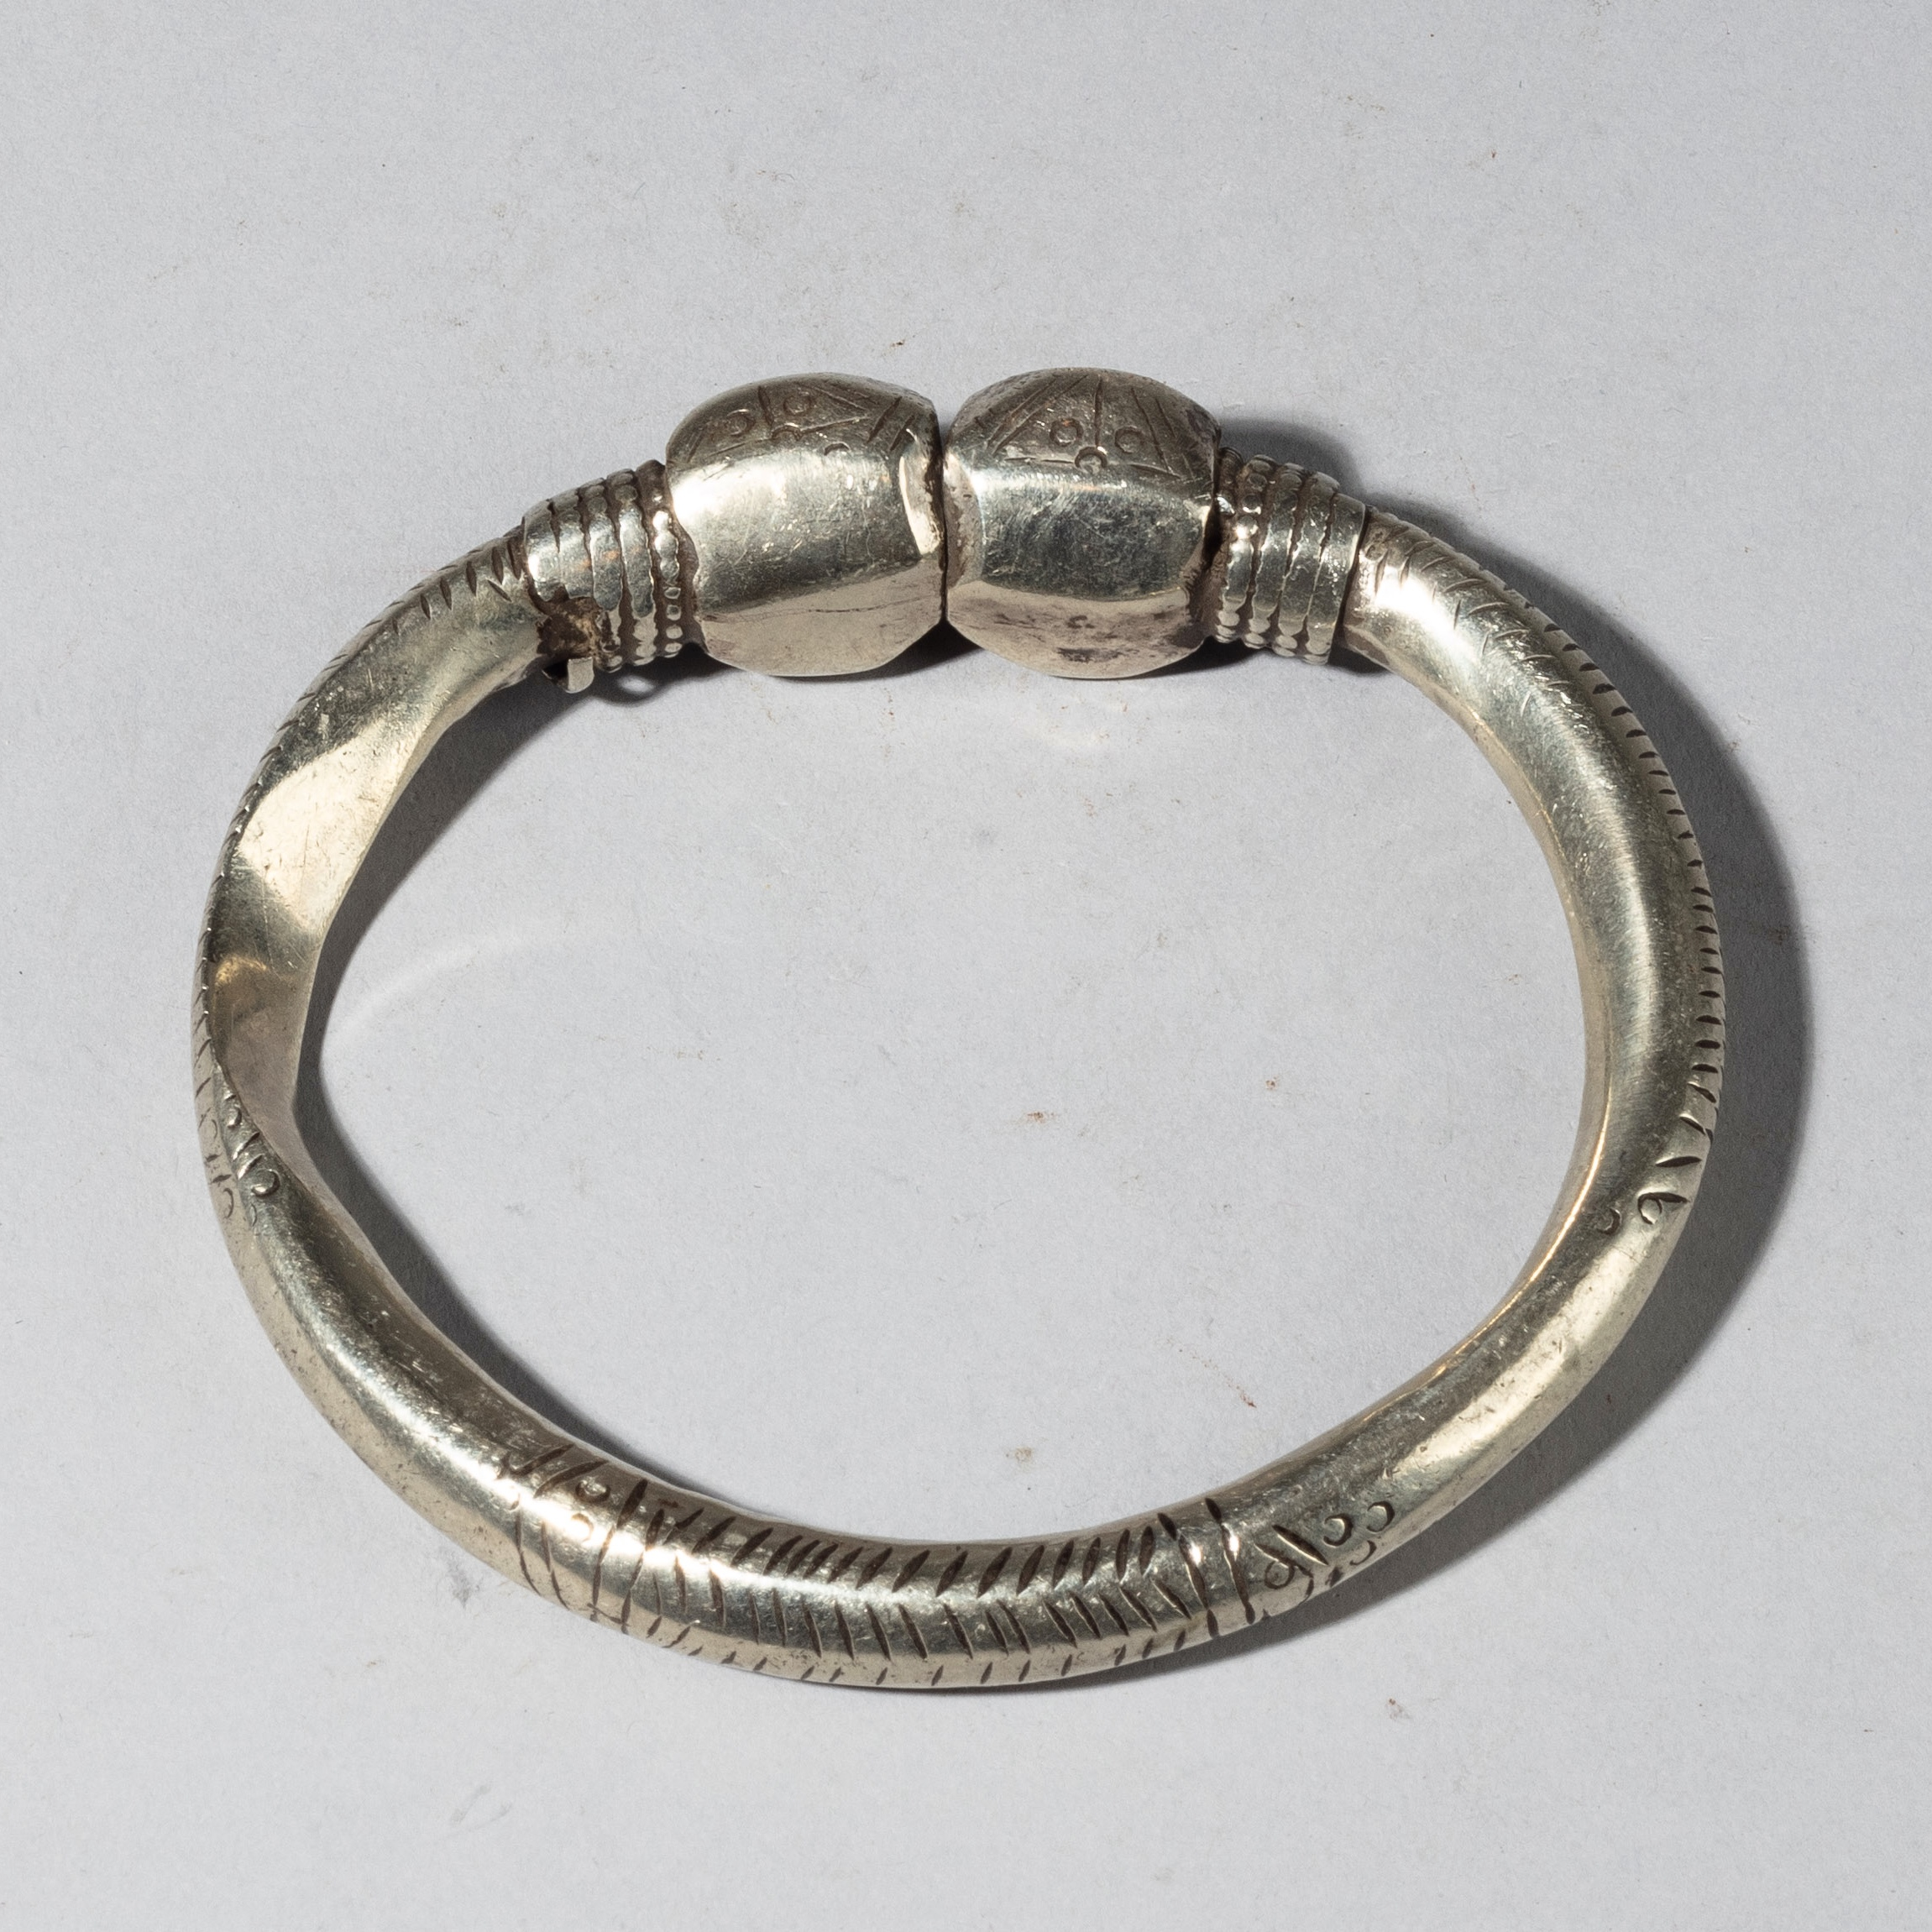 A 19THC SILVER ANKLET FROM ETHIOPIA WITH EXCELLENT WEAR, E. AFRICA ( No 4348)